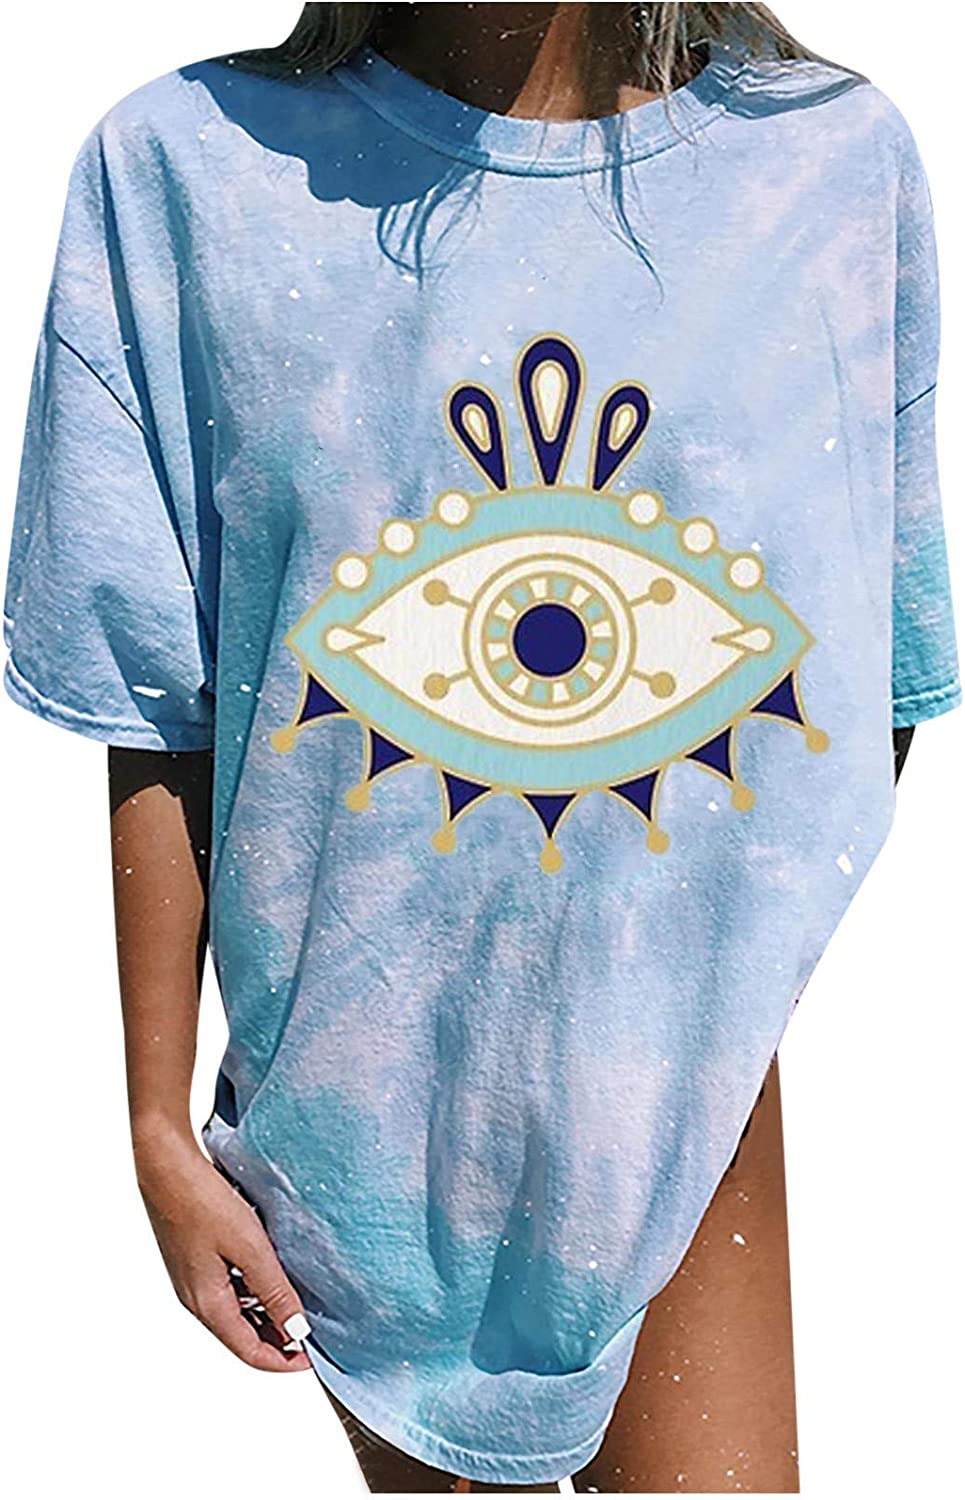 ORT Womens Vintage Oversized T Shirts Casual Short Sleeve Tops Teen Girls Eyes Moon and Sun Printed Blouses